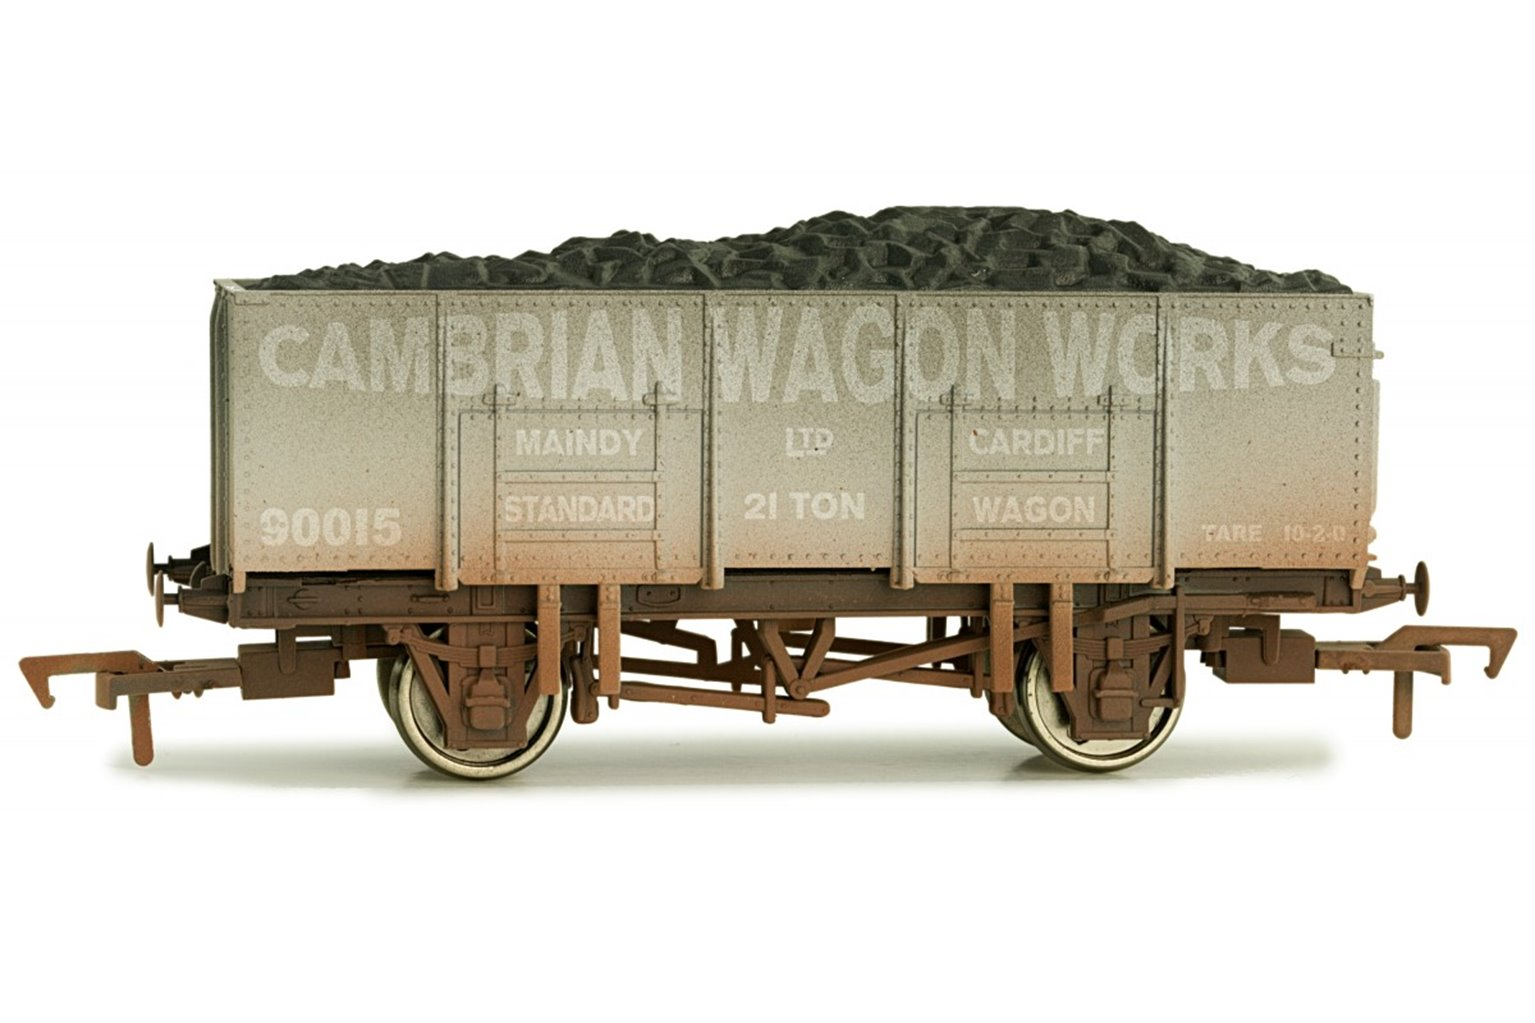 Dapol 4F-038-109 20t Steel Mineral Wagon Cambrian Wagon Works #90015 - Weathered